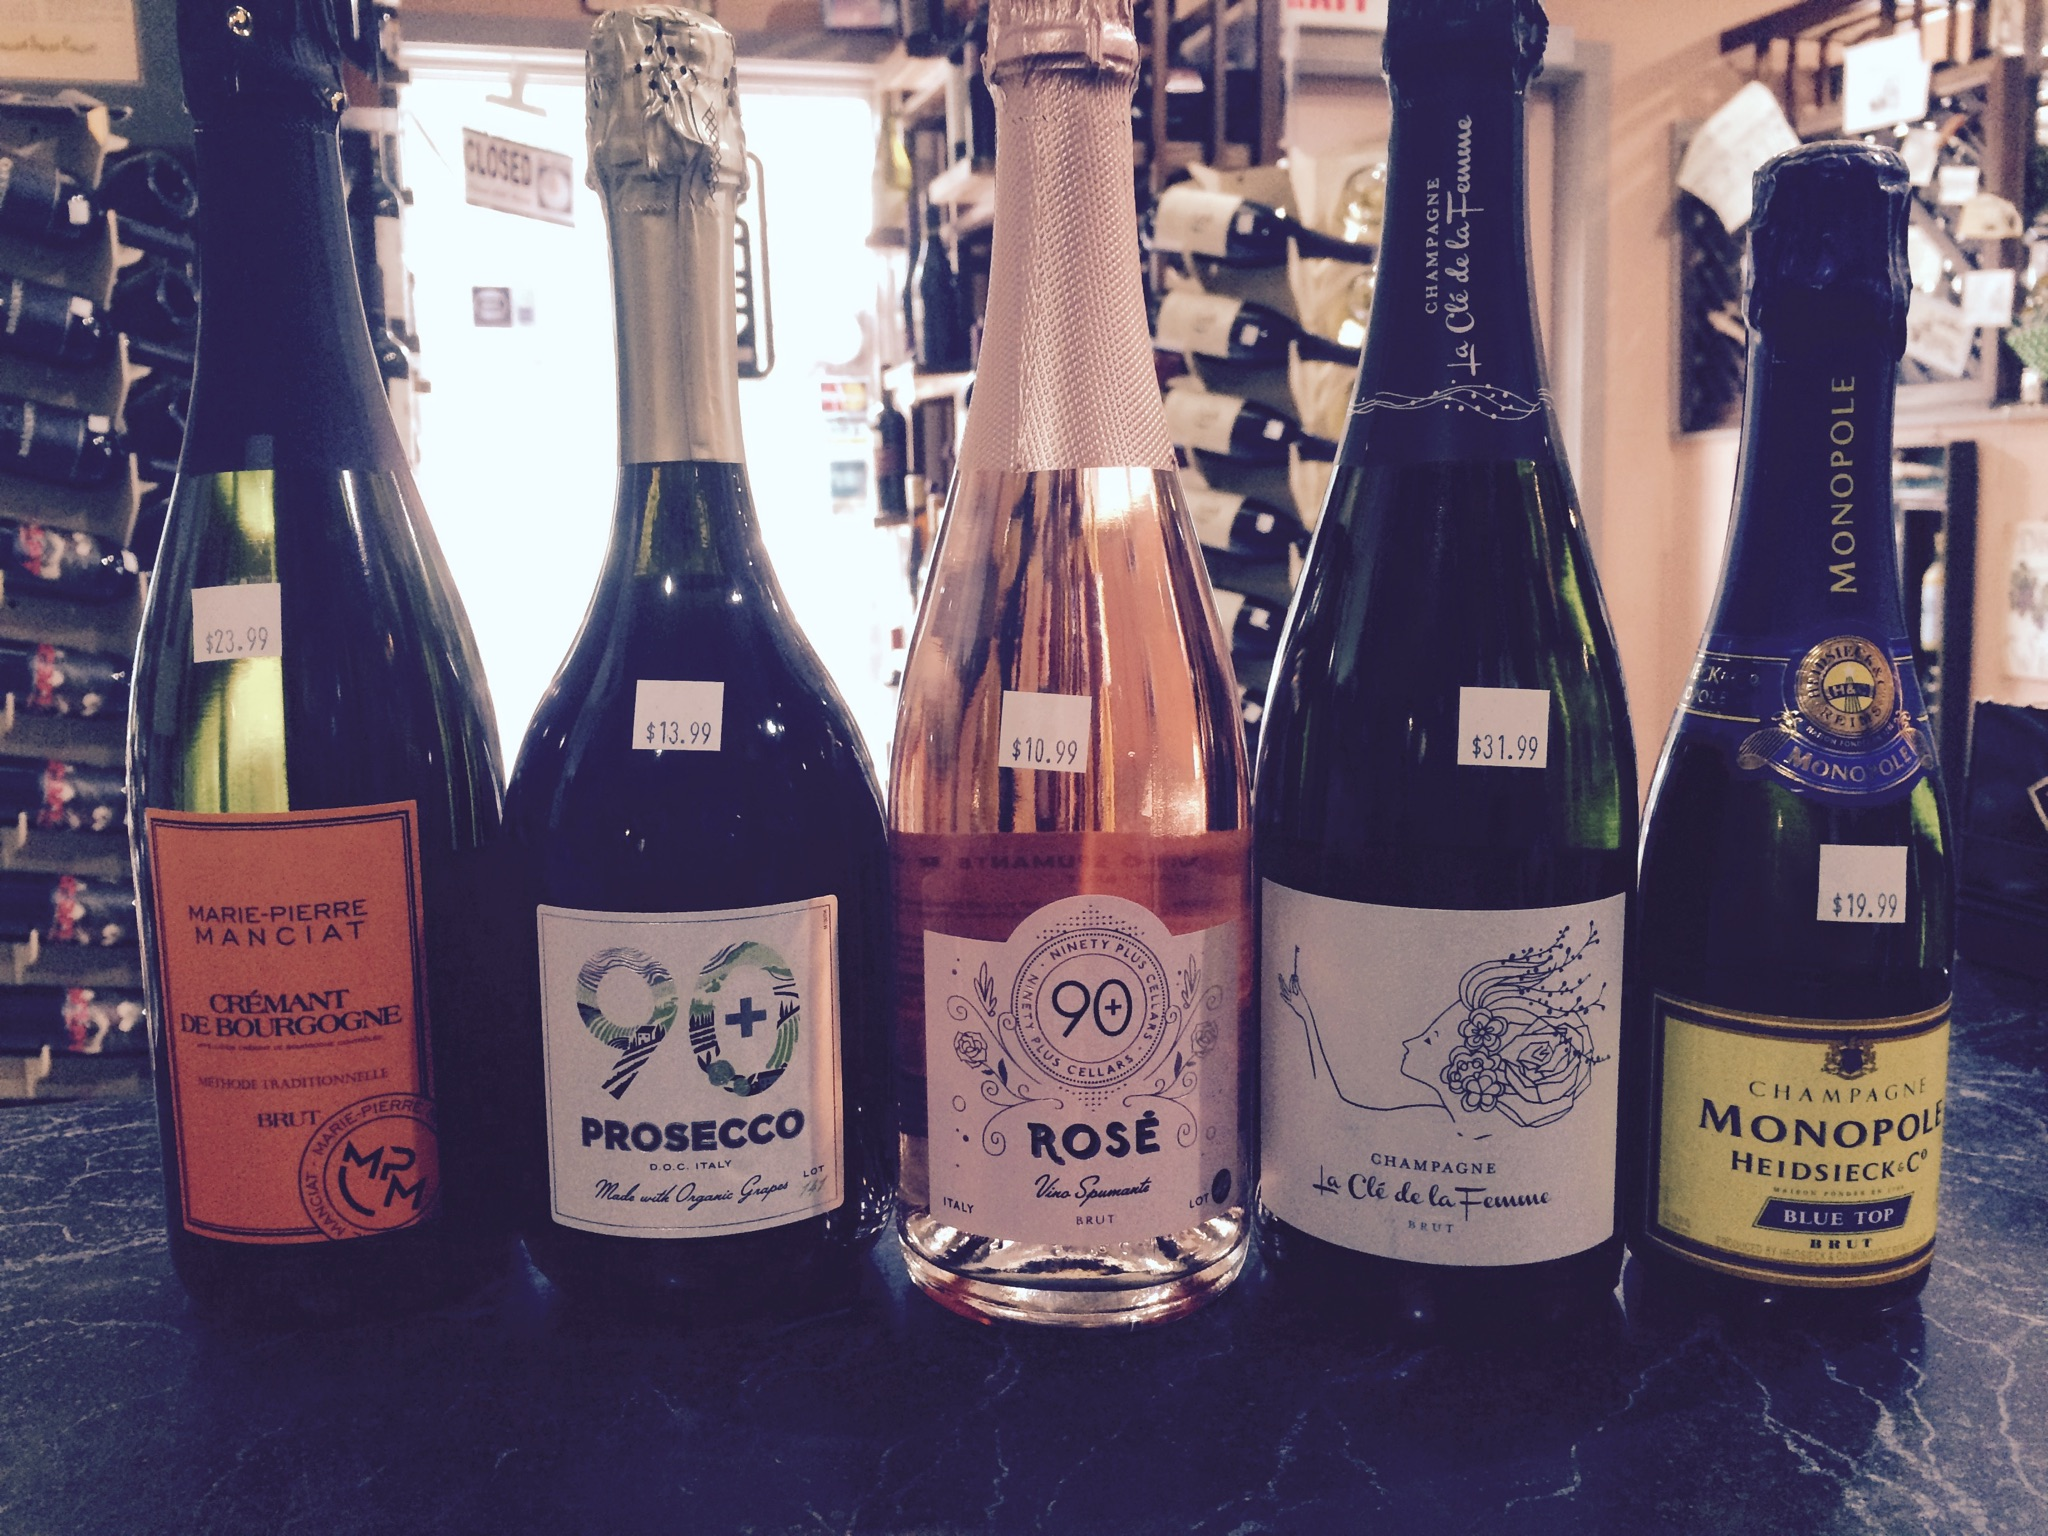 We sampled five sparkling wines this weekend to celebrate the end of summer...and sending the kids back to school.